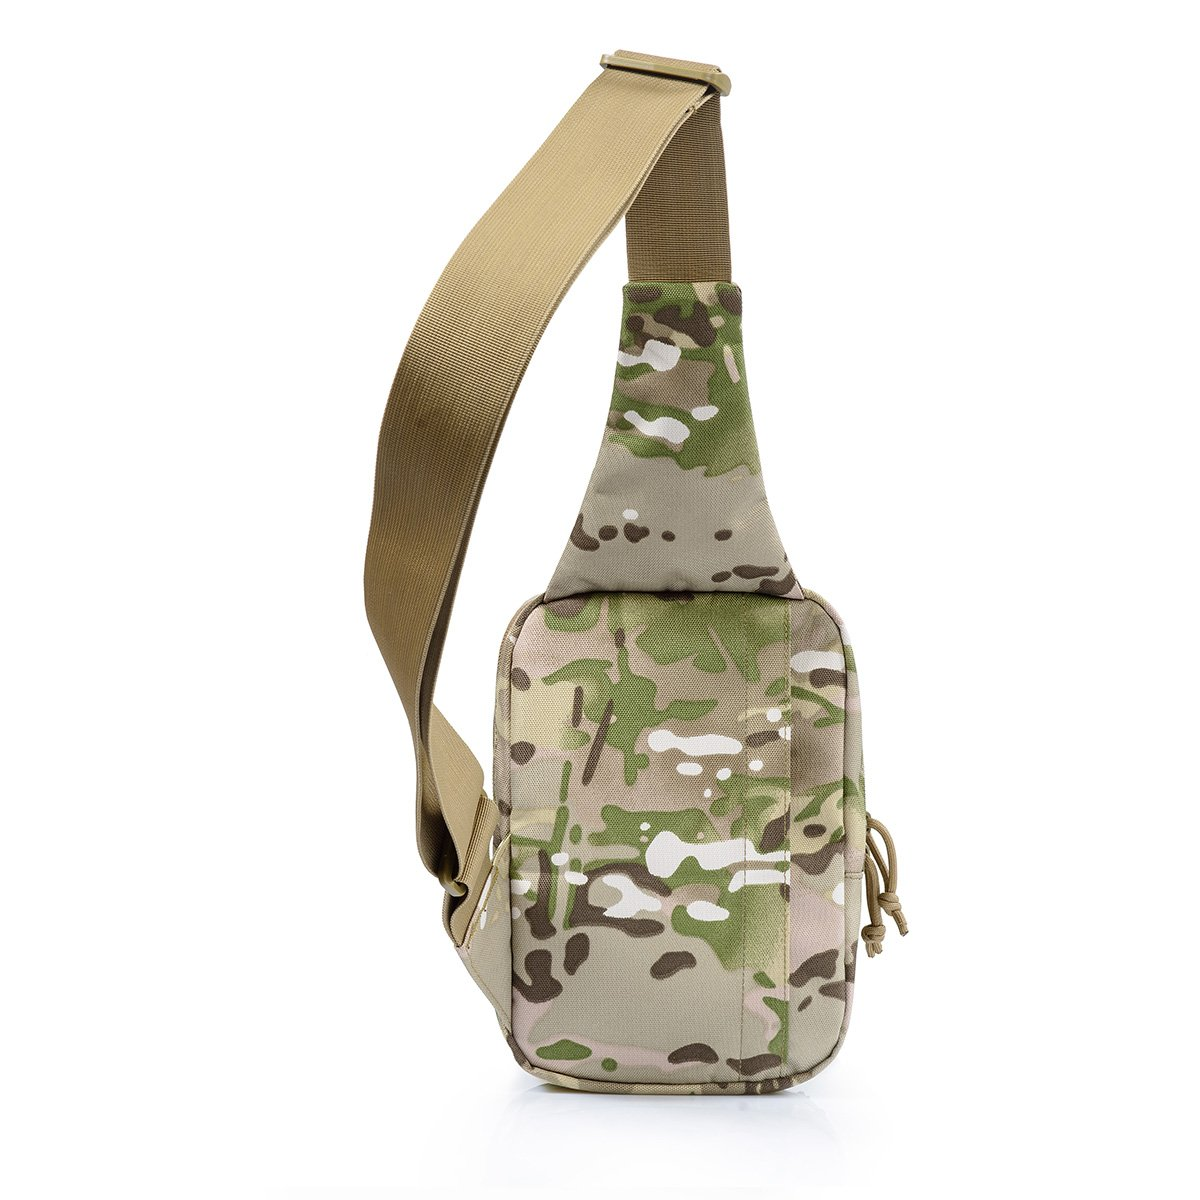 vAv YAKEDA Nylon Tactical Sling Bag Cross Body Gun Backpack Design for Handgun Move quickly-KF-083